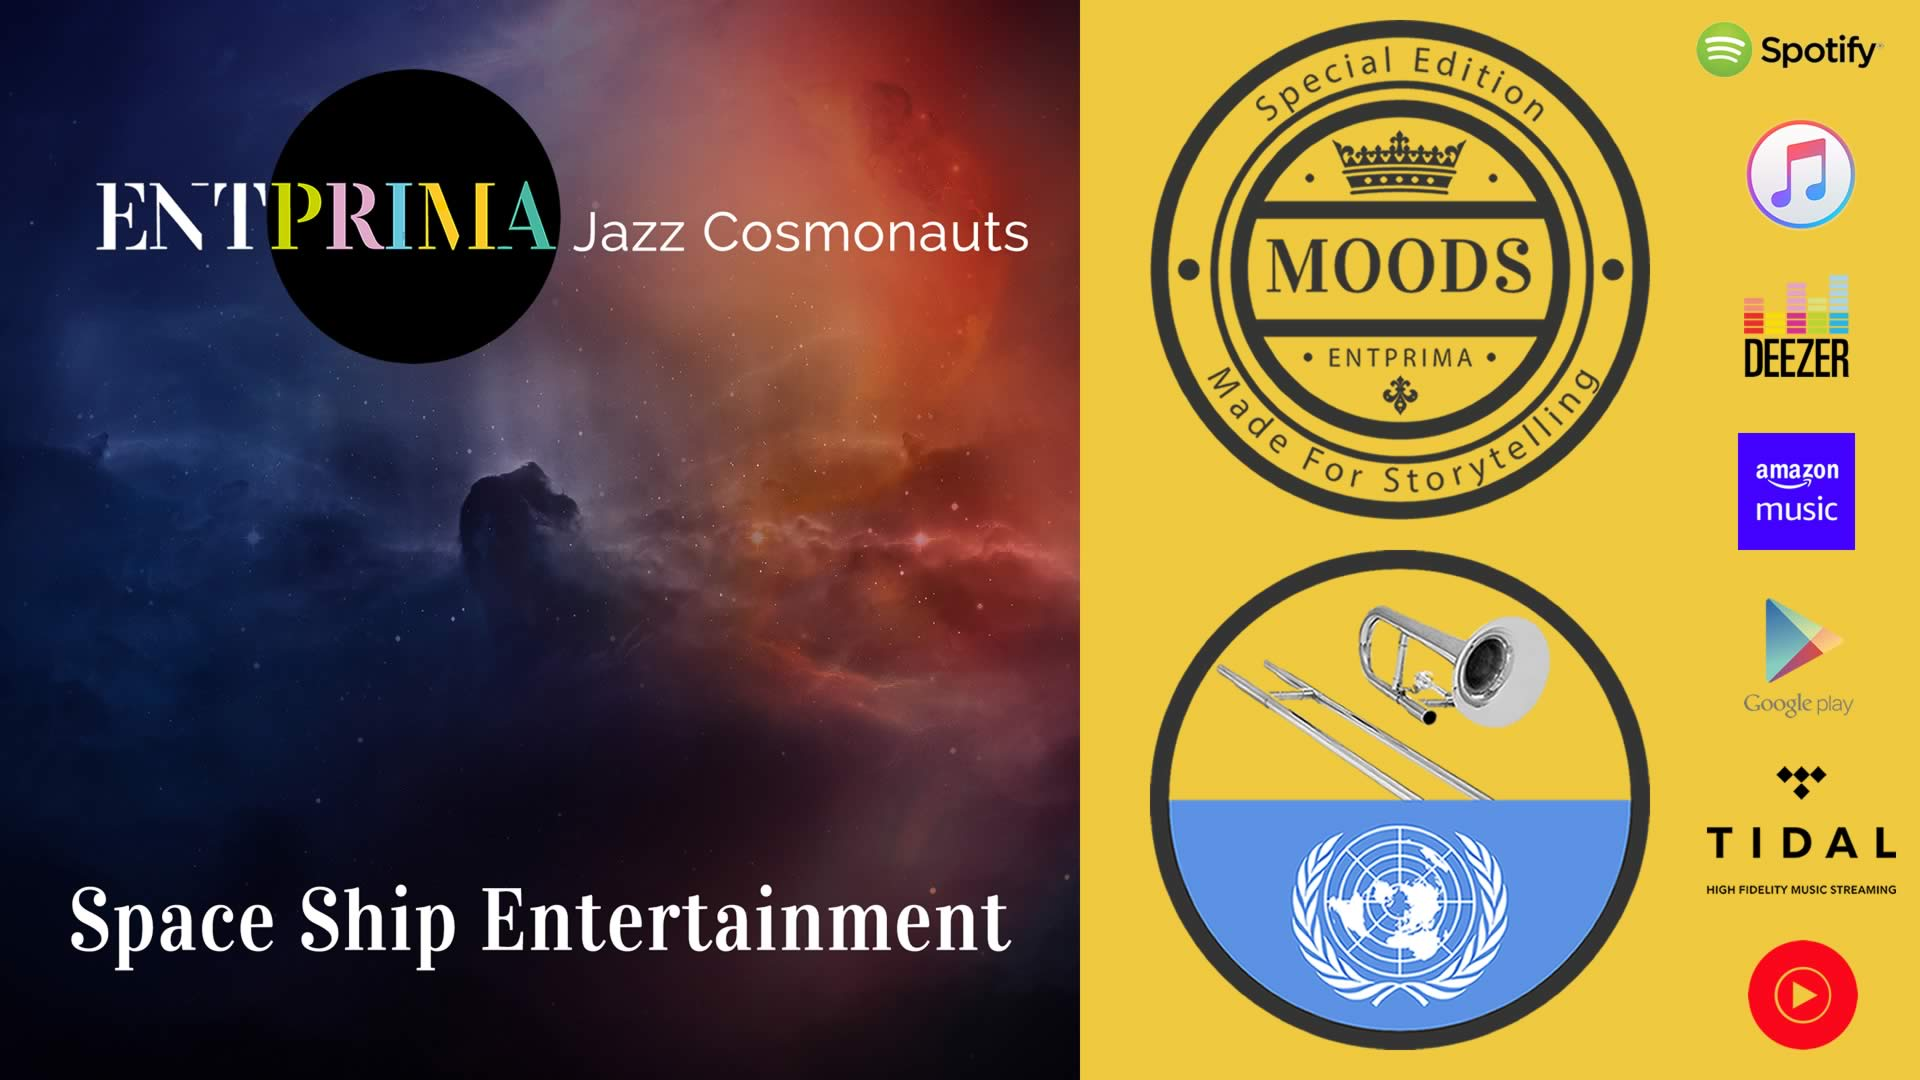 Entprima Jazz Cosmonauts - Space Ship Entertainment